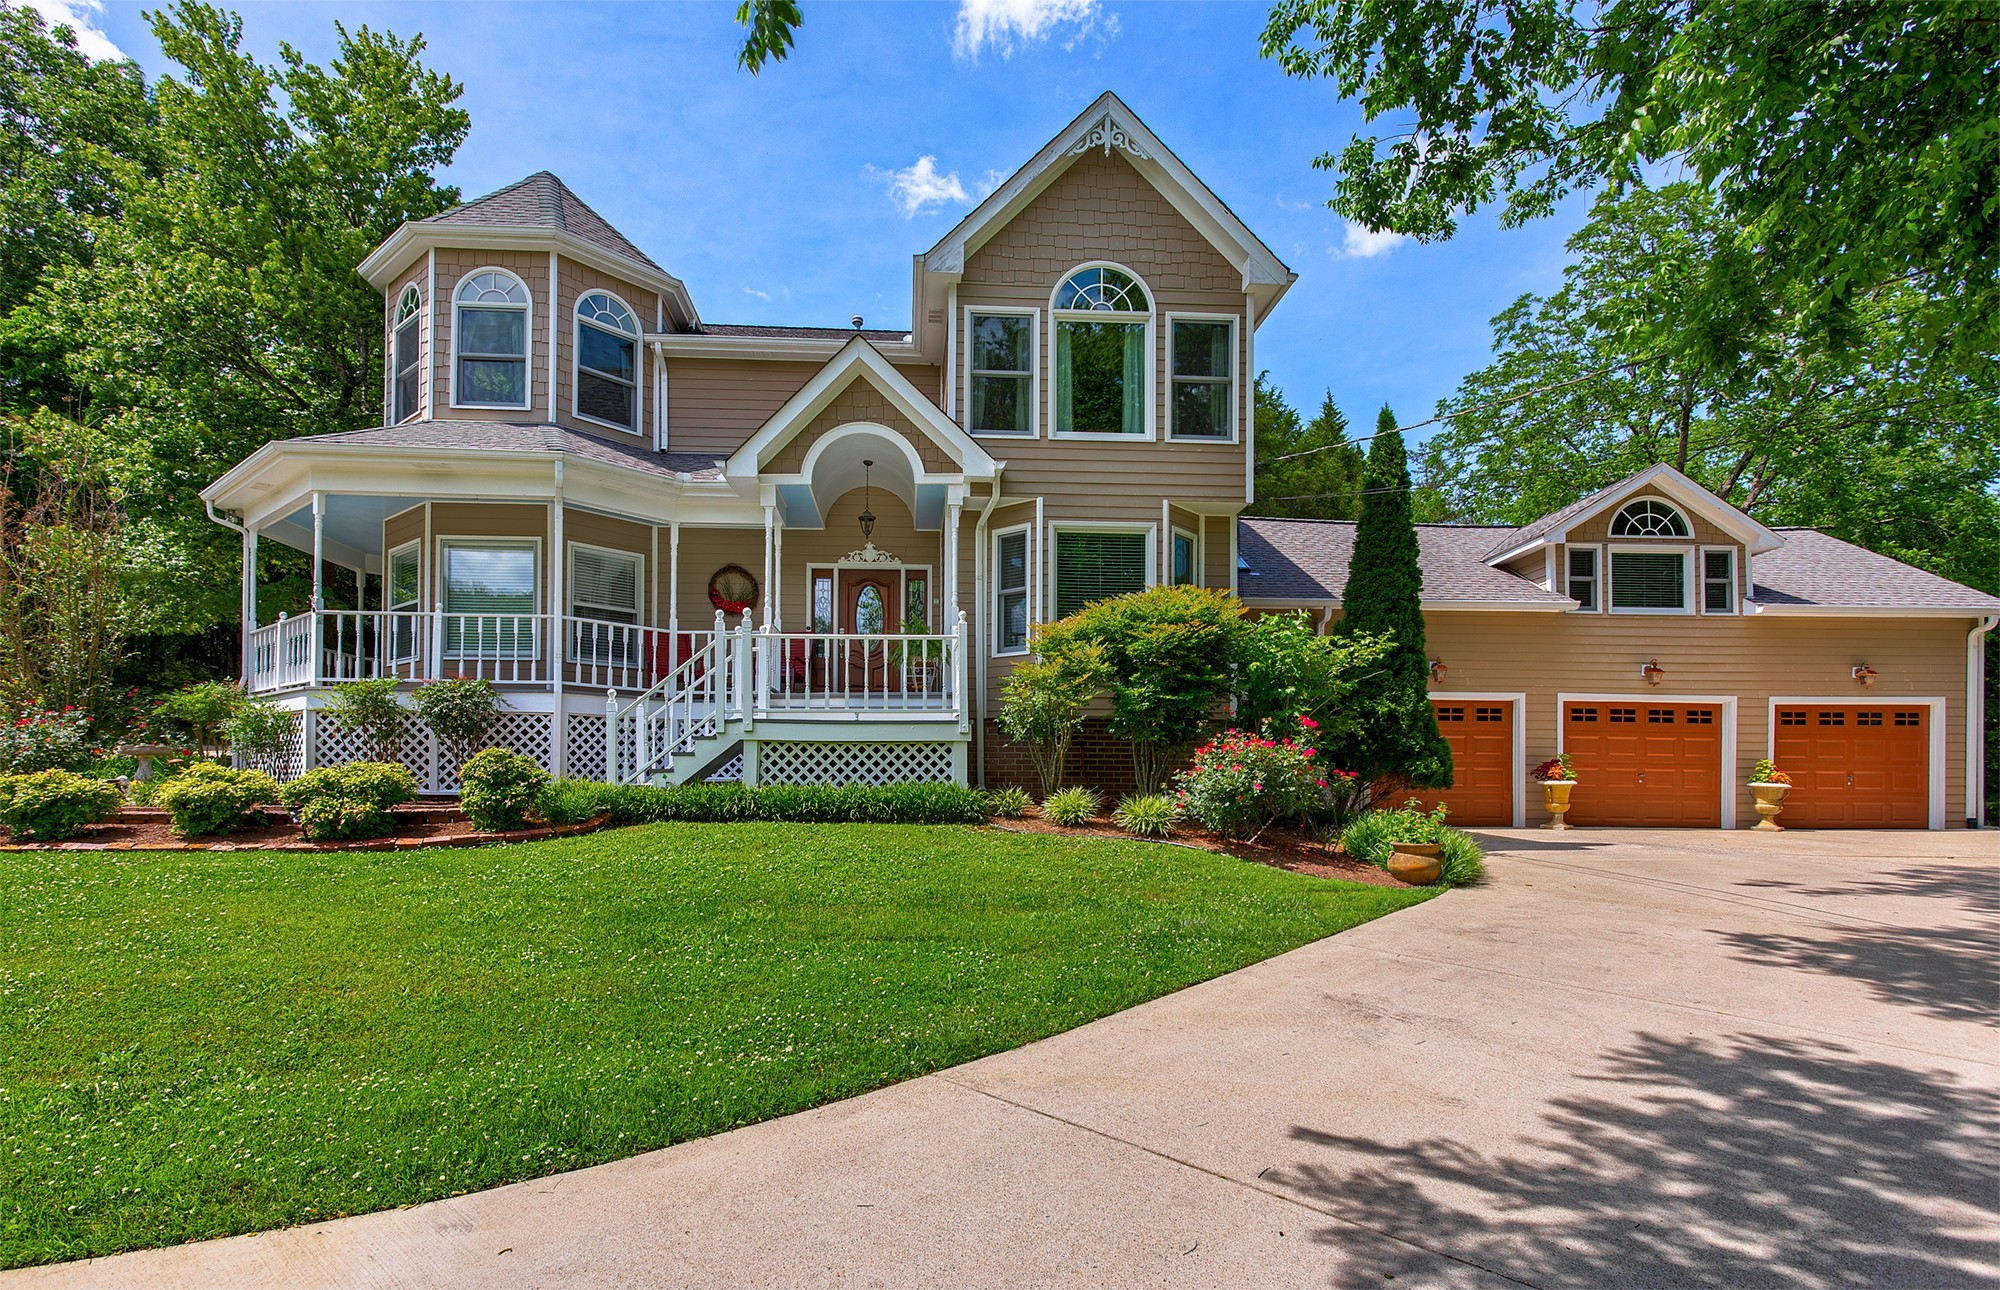 6500 Lickton Pike Property Photo - Goodlettsville, TN real estate listing